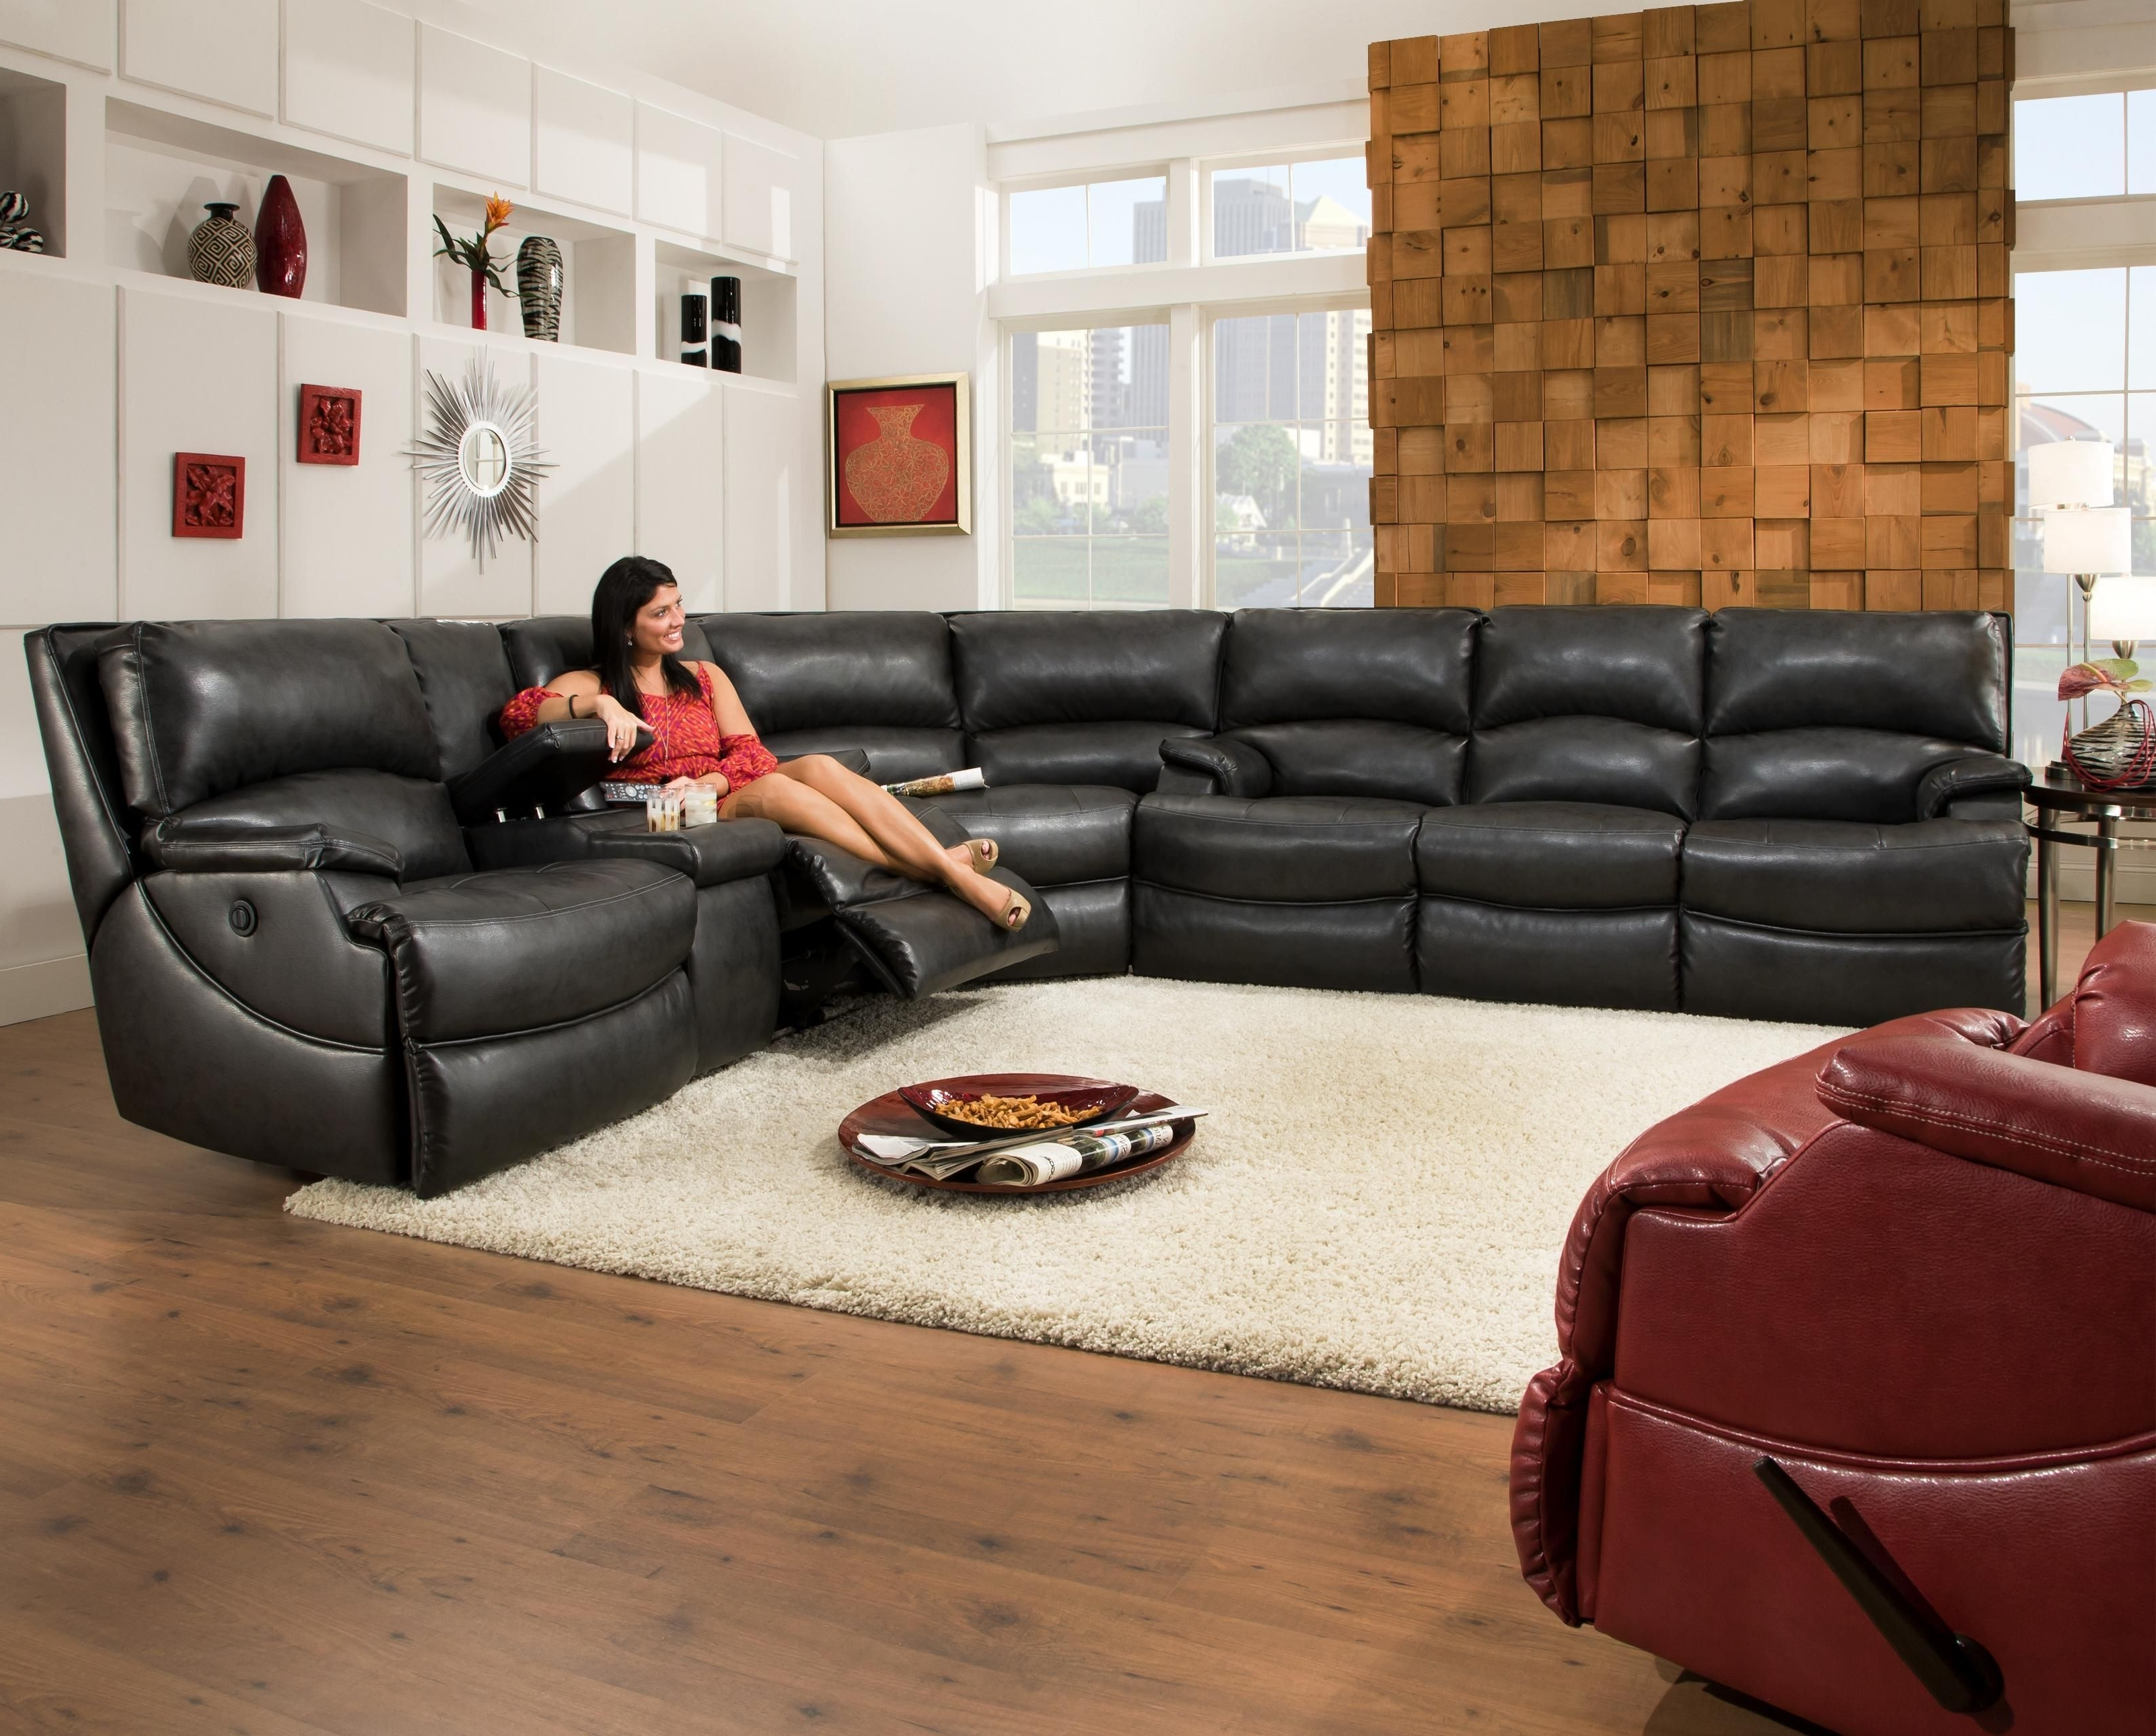 Explore Gallery of Tampa Sectional Sofas (Showing 11 of 20 ...